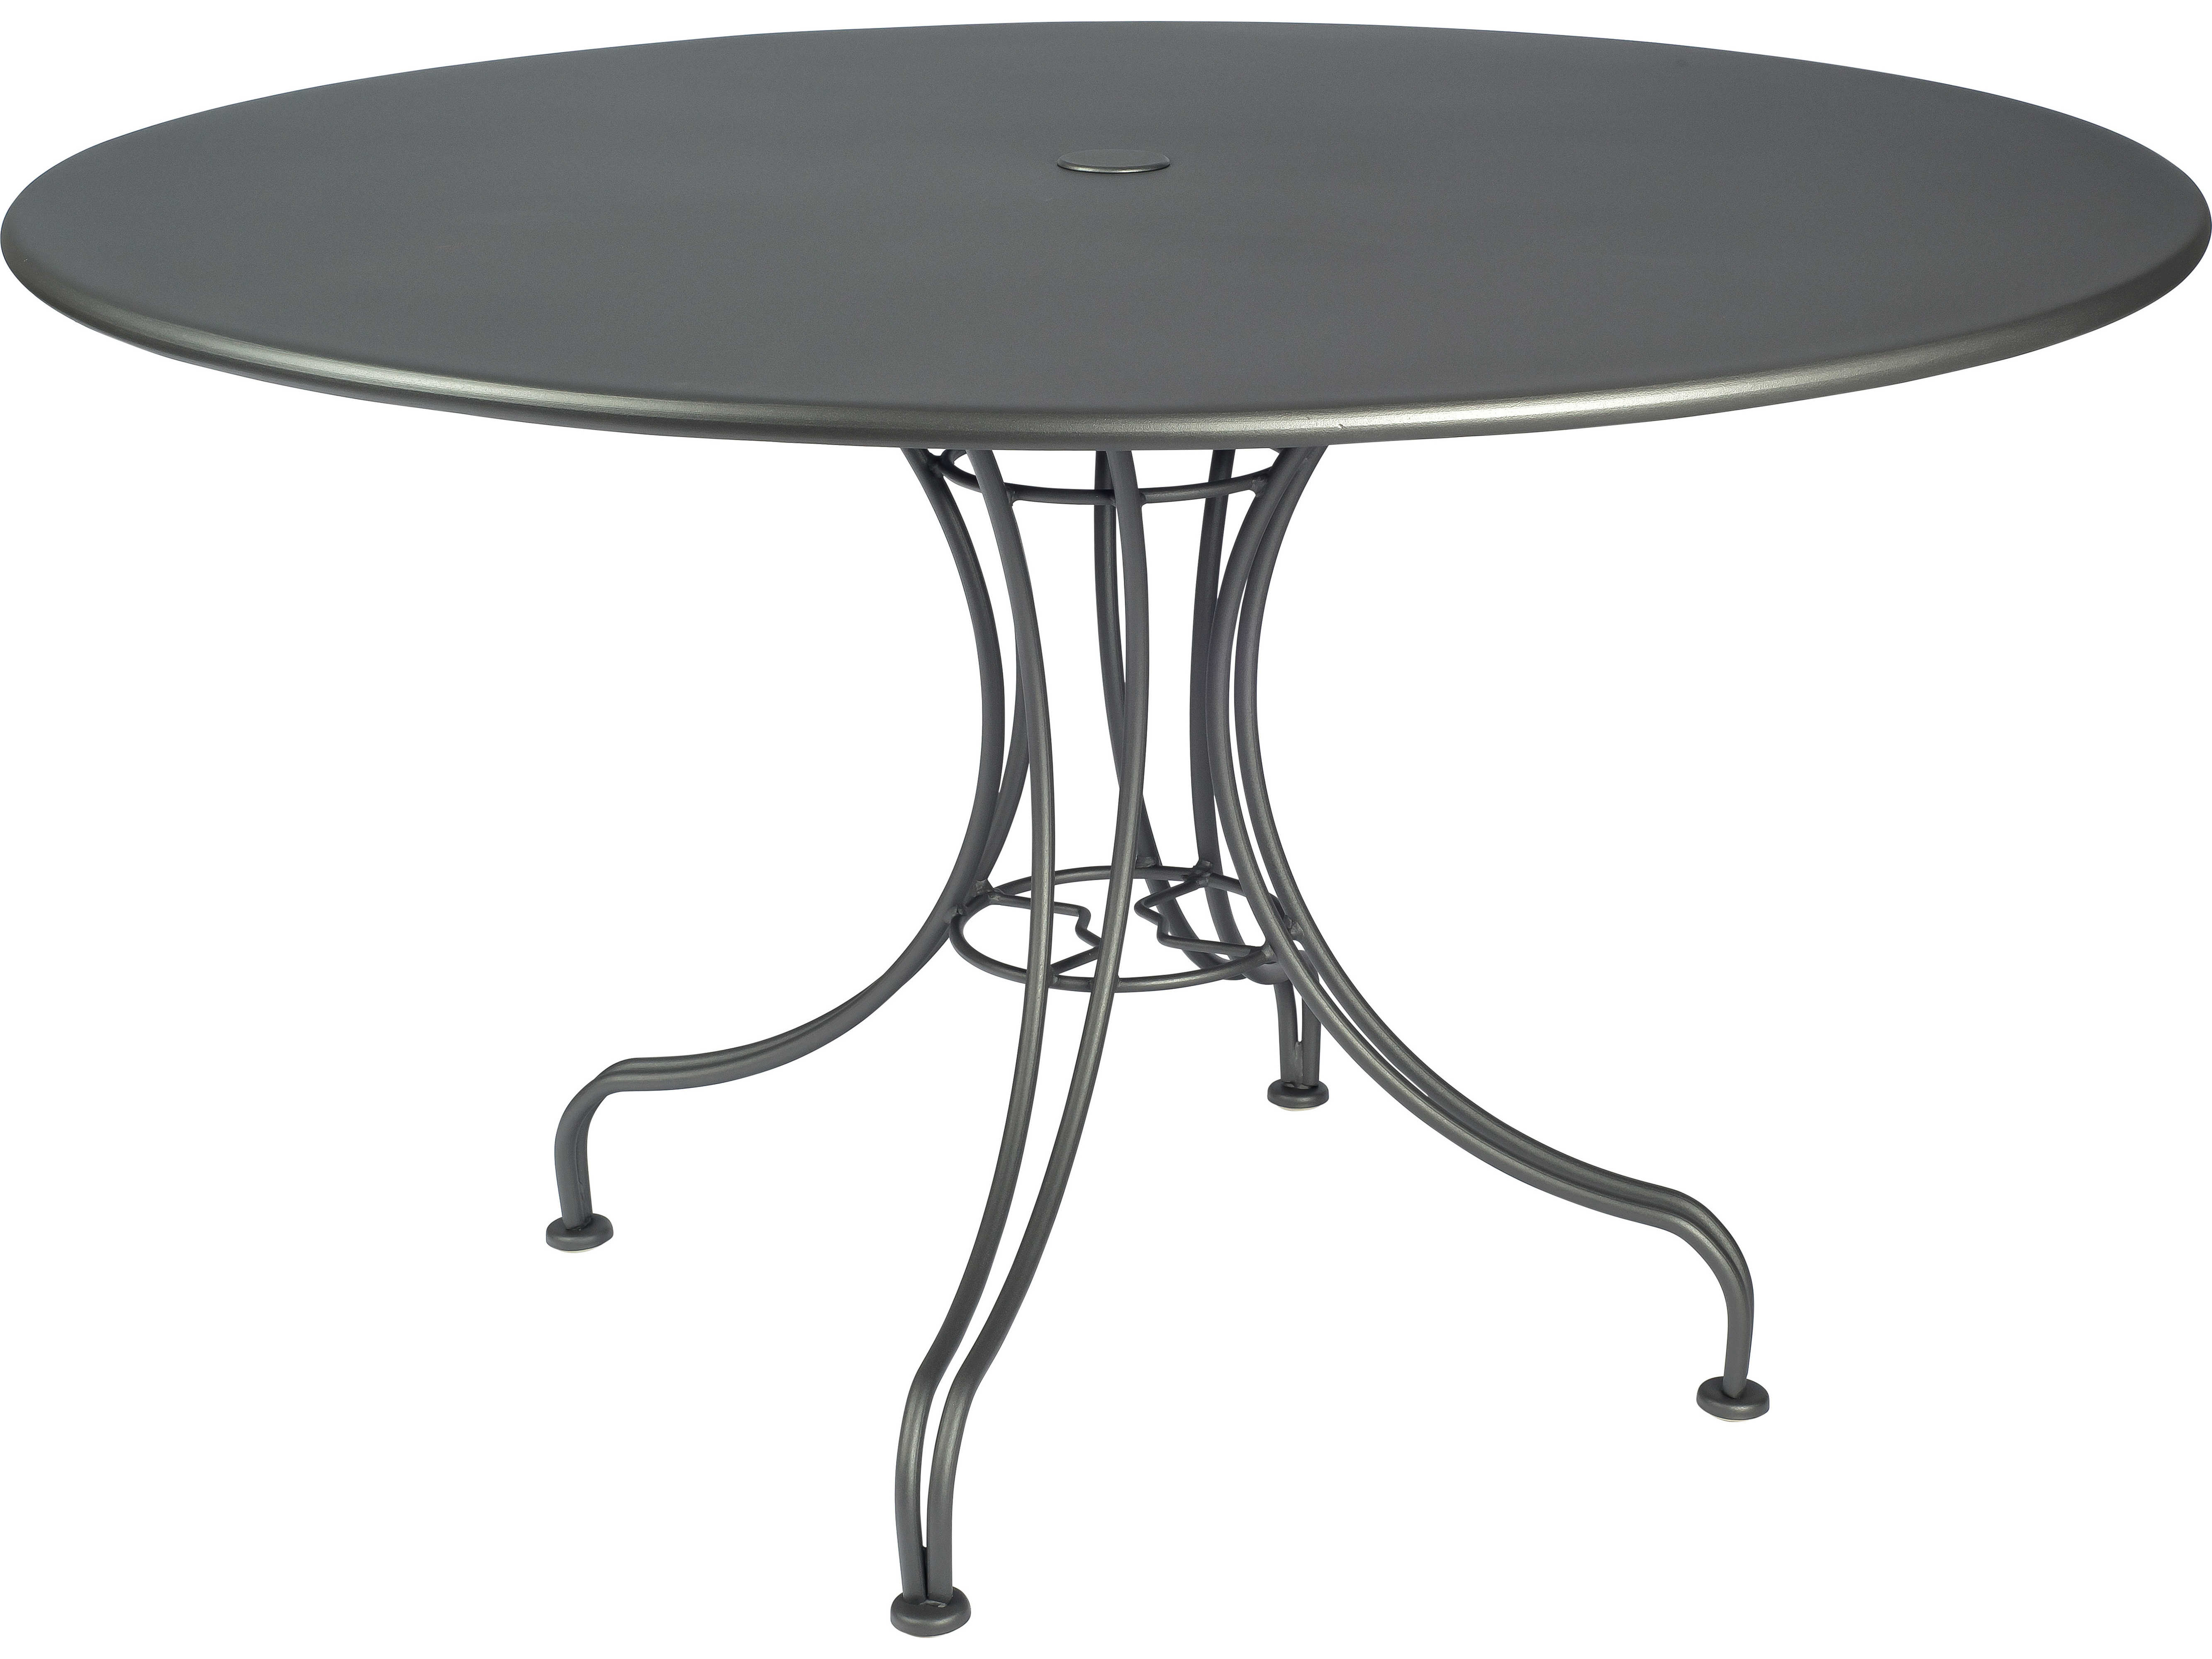 77ddf5a0307f Woodard Wrought Iron 48 Round Dining Table With Umbrella ...